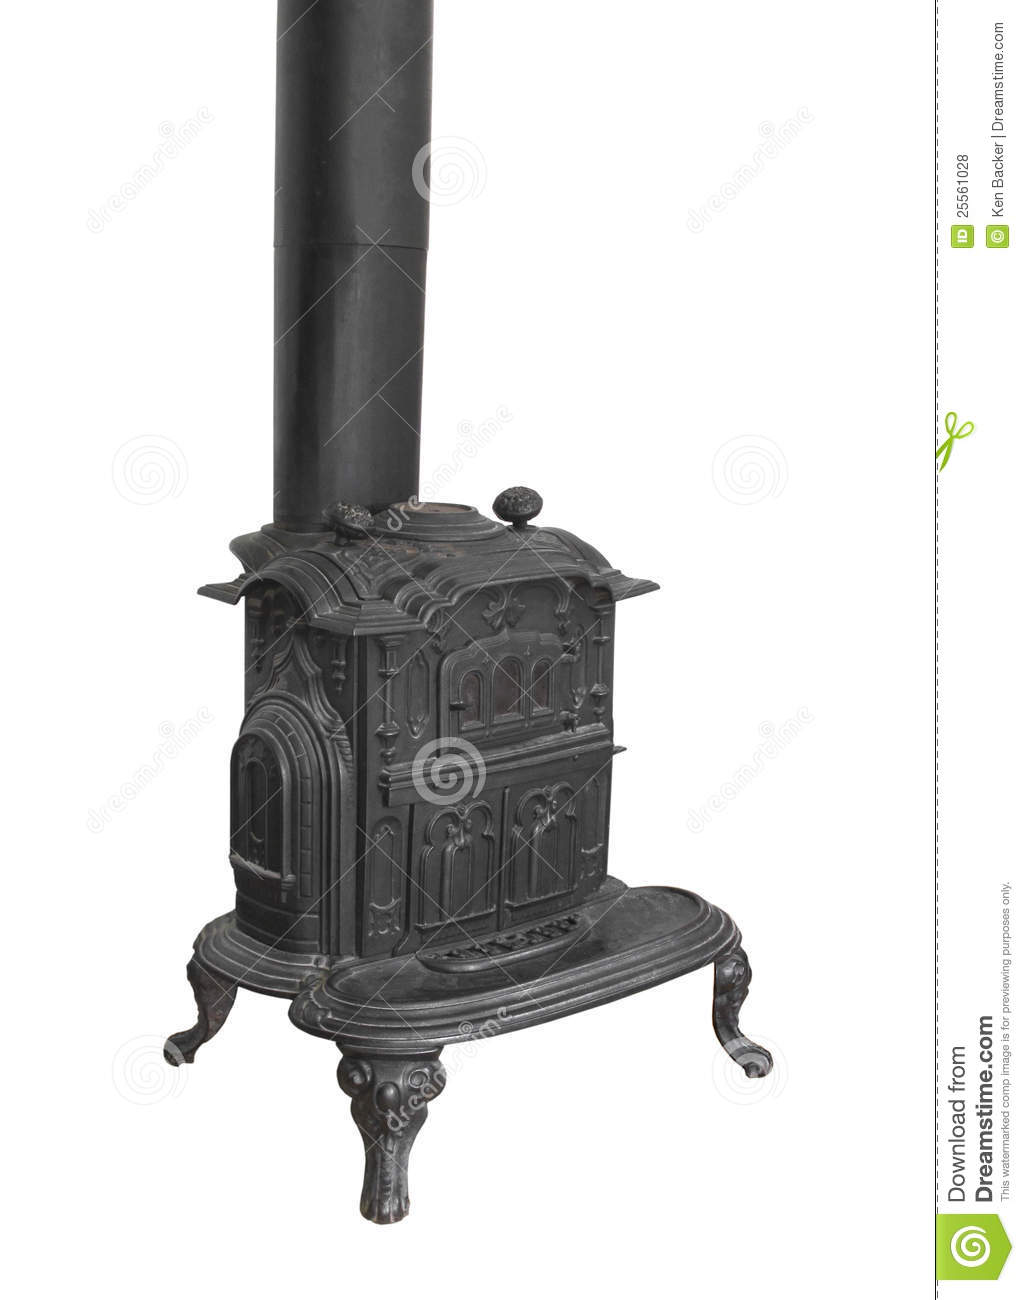 Old Wood Burning Heater Stove Isolated Royalty Free Stock